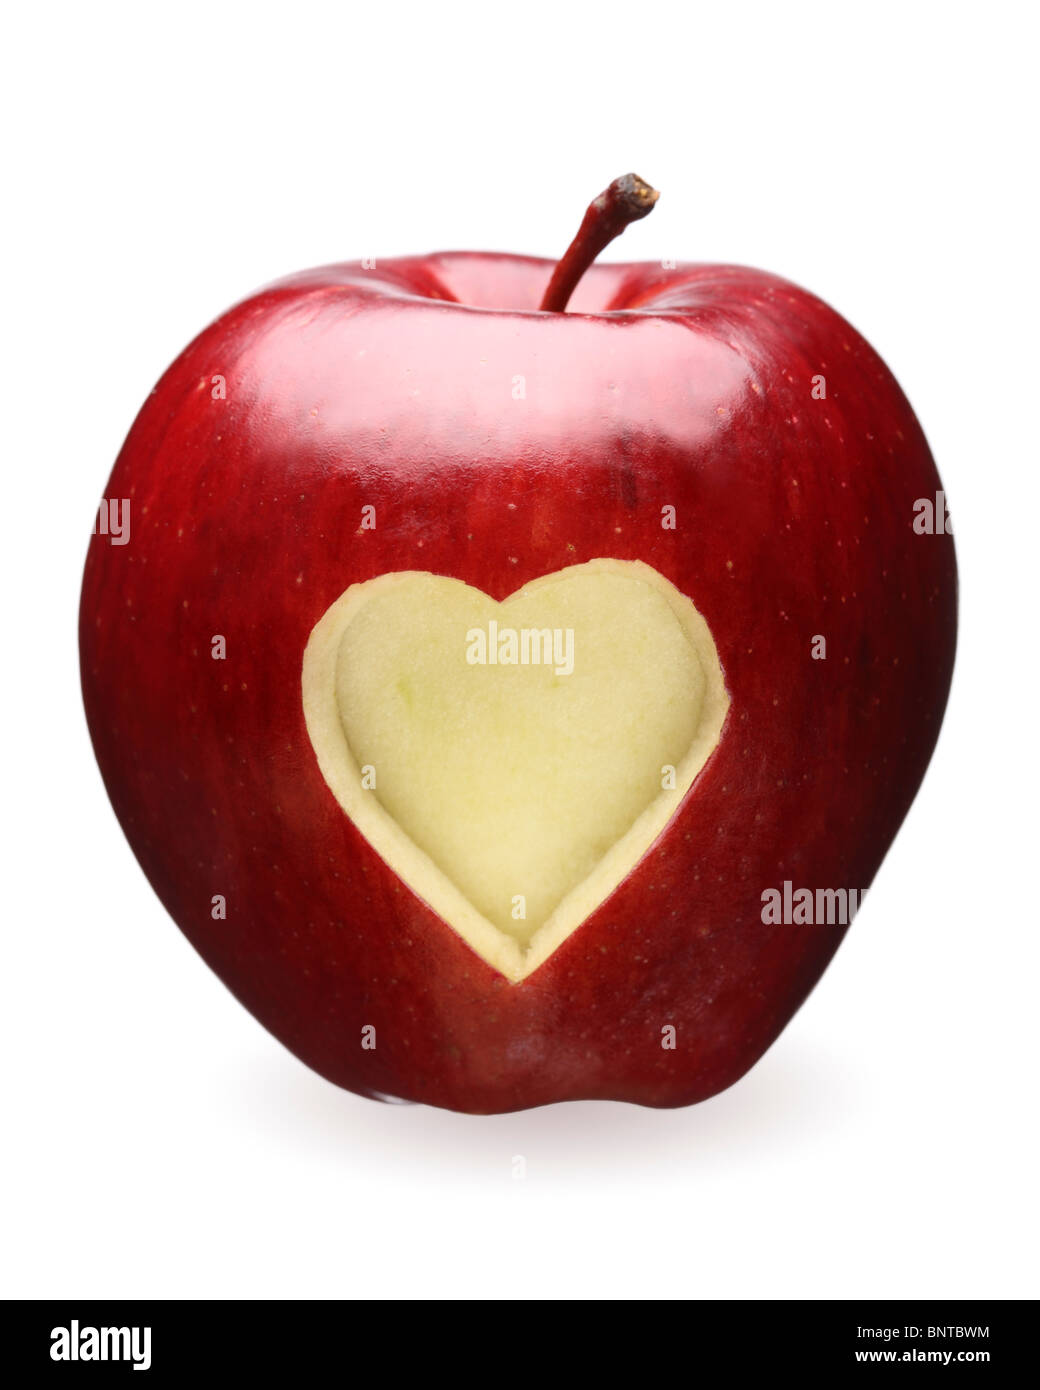 Heart shape carved out of red apple Stock Photo